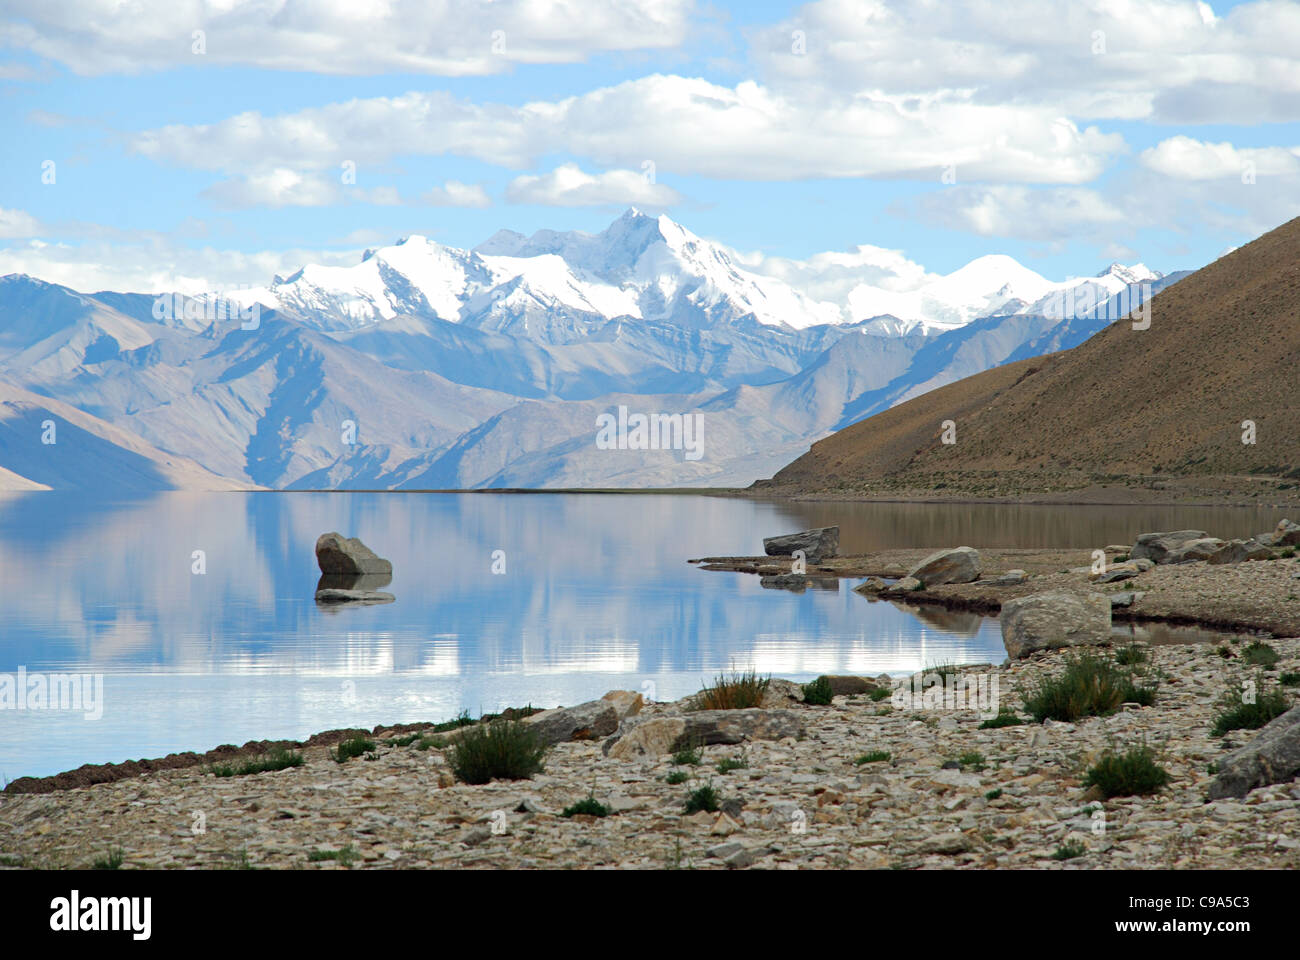 Reflection of snow clad Himalayan mountain ranges in Tsomoriri or Lake Moriri (official name: Tsomoriri Wetland - Stock Image